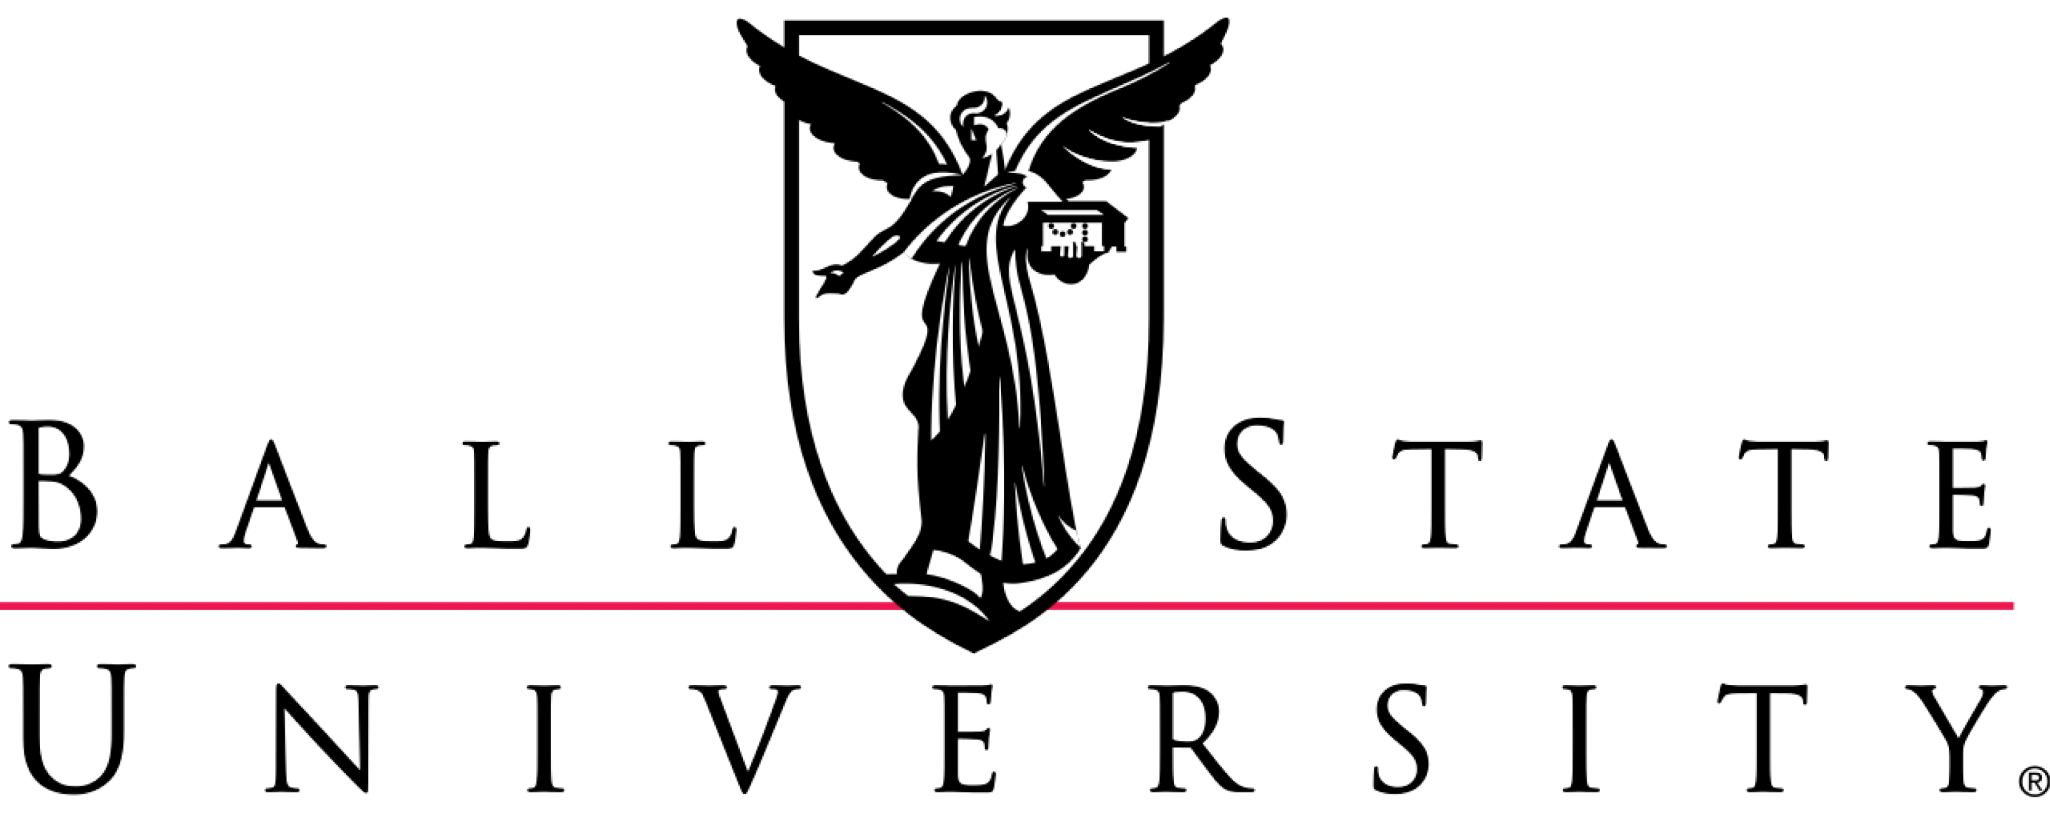 Ball_State_University_Official_Horizontal_Logo